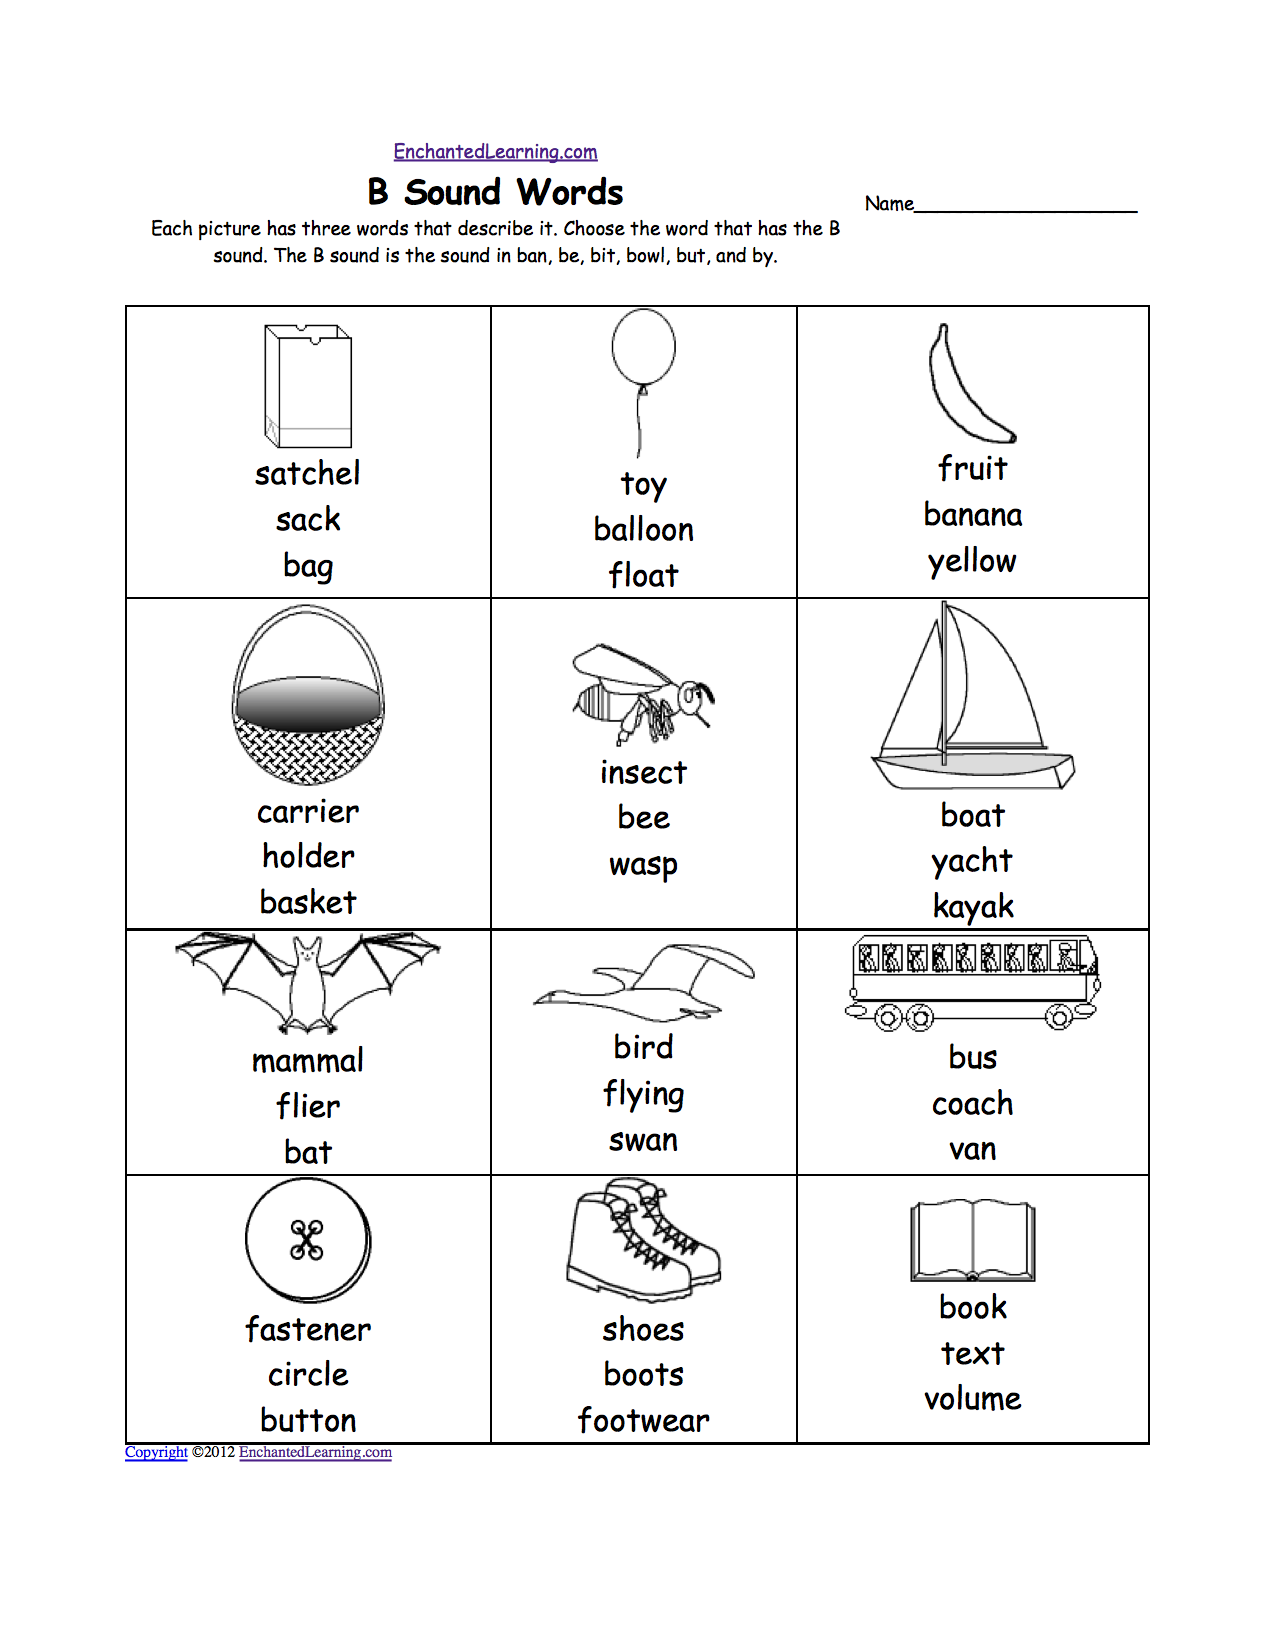 Weirdmailus  Gorgeous Phonics Worksheets Multiple Choice Worksheets To Print  With Exciting Quotbquot Sound Phonics Worksheet Multiple Choice Each Picture Has Three Words That Describe It Choose The Word That Has A Quotbquot Sound The Quotbquot Sound Is The Sound  With Breathtaking Aa Second Step Worksheet Also Evan Moor Corp Worksheets In Addition Landmark Supreme Court Cases Worksheet And Perspective Taking Worksheets As Well As Simplify The Radicals Worksheet Additionally Open Excel Worksheet In New Window From Enchantedlearningcom With Weirdmailus  Exciting Phonics Worksheets Multiple Choice Worksheets To Print  With Breathtaking Quotbquot Sound Phonics Worksheet Multiple Choice Each Picture Has Three Words That Describe It Choose The Word That Has A Quotbquot Sound The Quotbquot Sound Is The Sound  And Gorgeous Aa Second Step Worksheet Also Evan Moor Corp Worksheets In Addition Landmark Supreme Court Cases Worksheet From Enchantedlearningcom